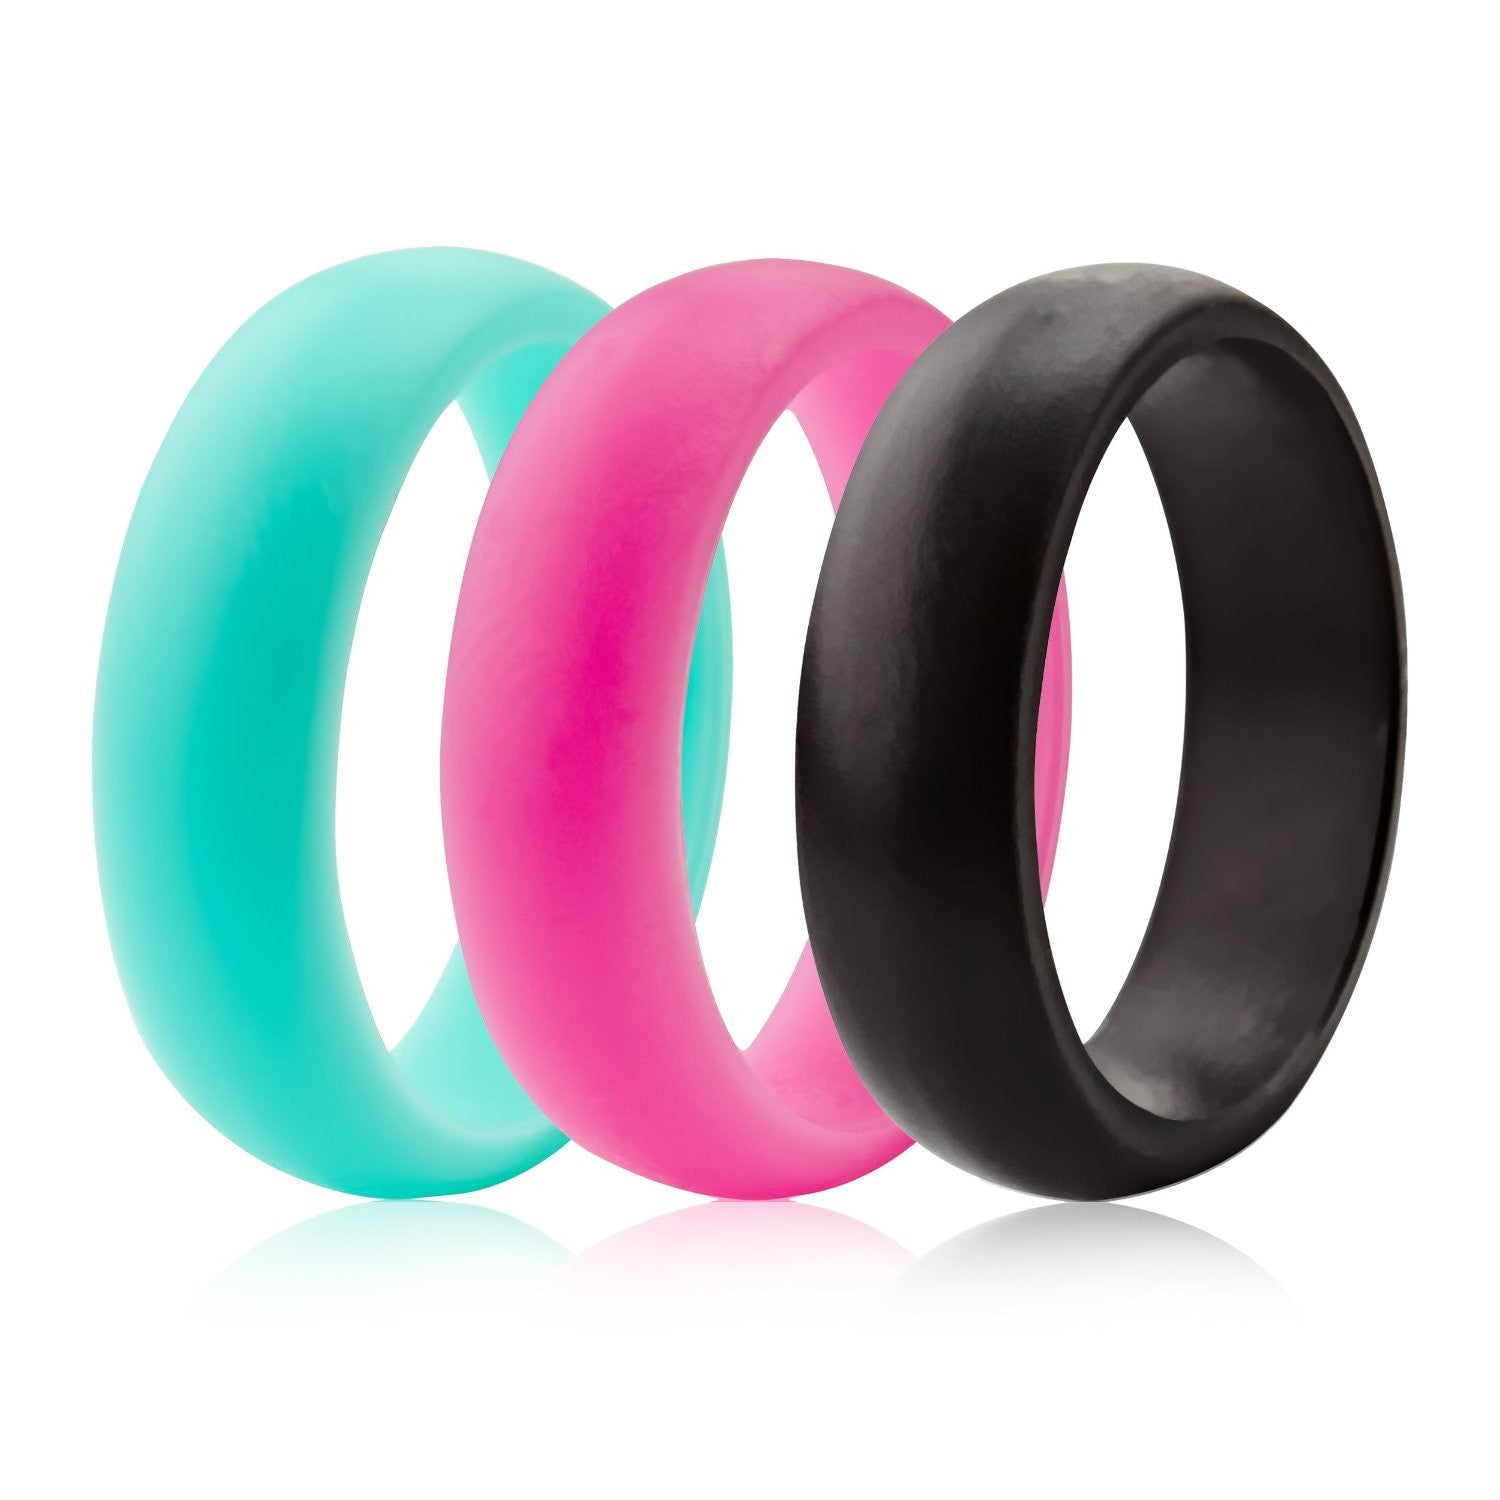 Silicone Wedding Rings - 3 Pack - Teal Pink Black - (5.5mm Wide)